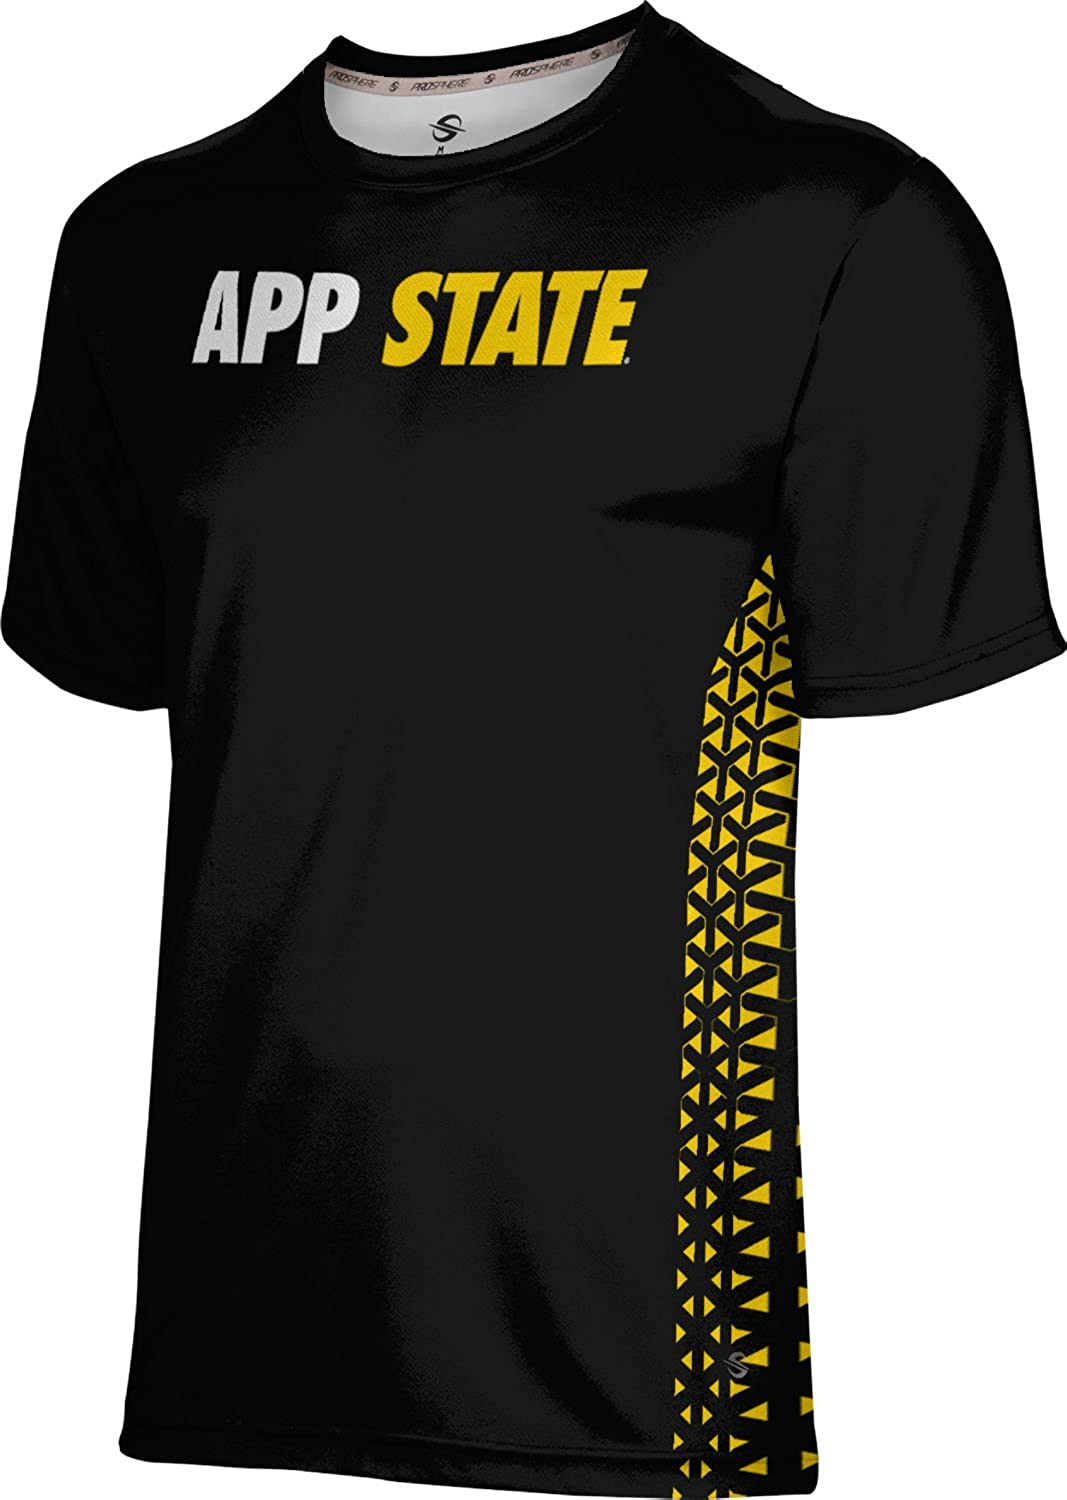 Ripple ProSphere California State University Long Beach Mens Performance T-Shirt